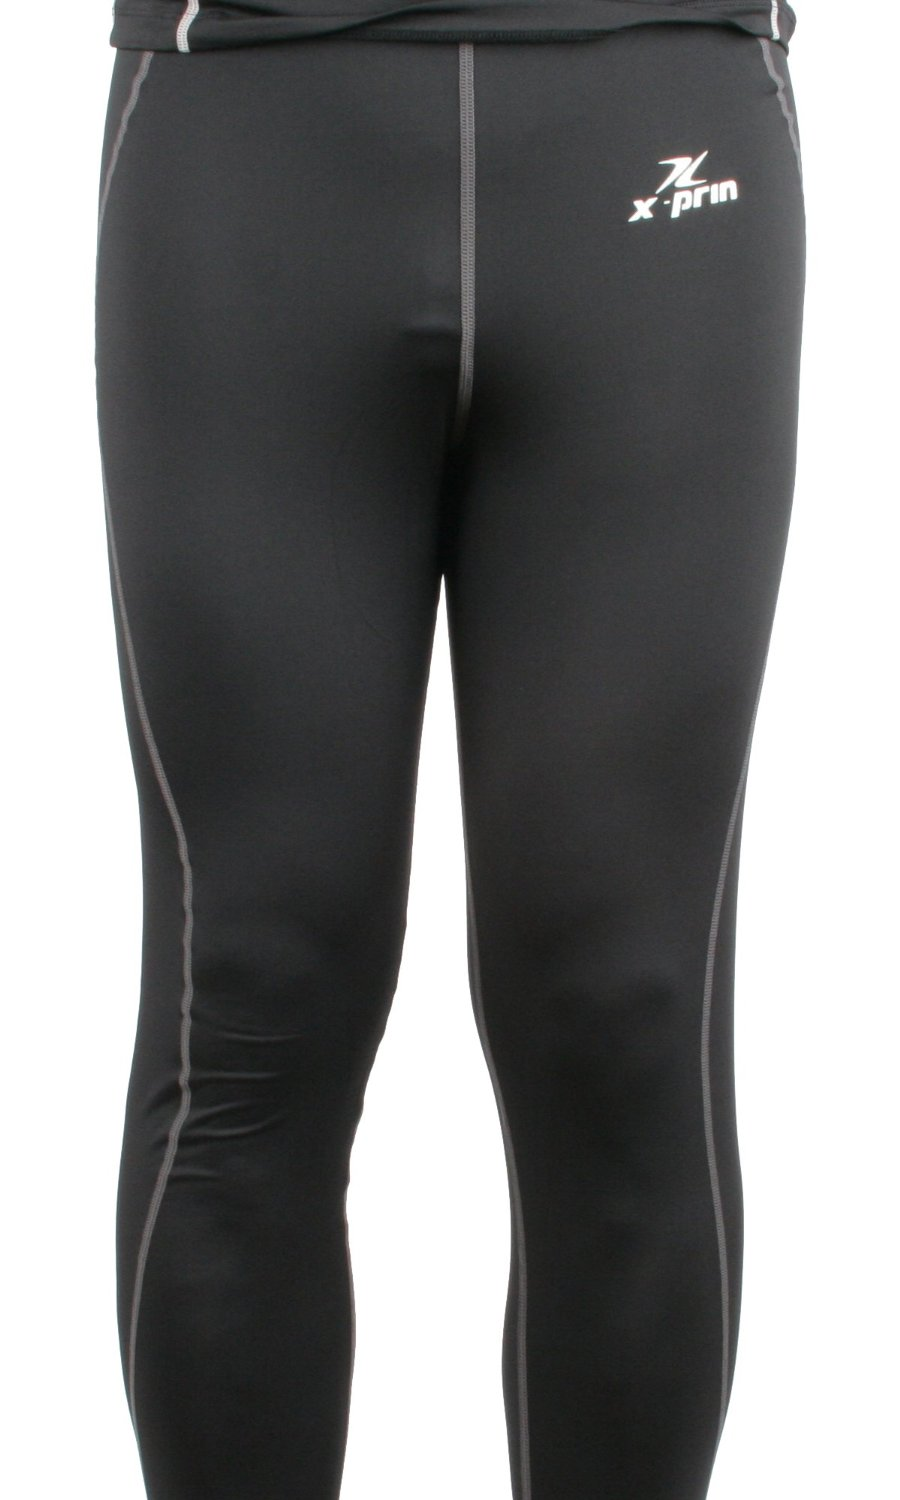 X-Prin XP307 Long Pants Base Layer compression Leggings Sports wear S~XXL